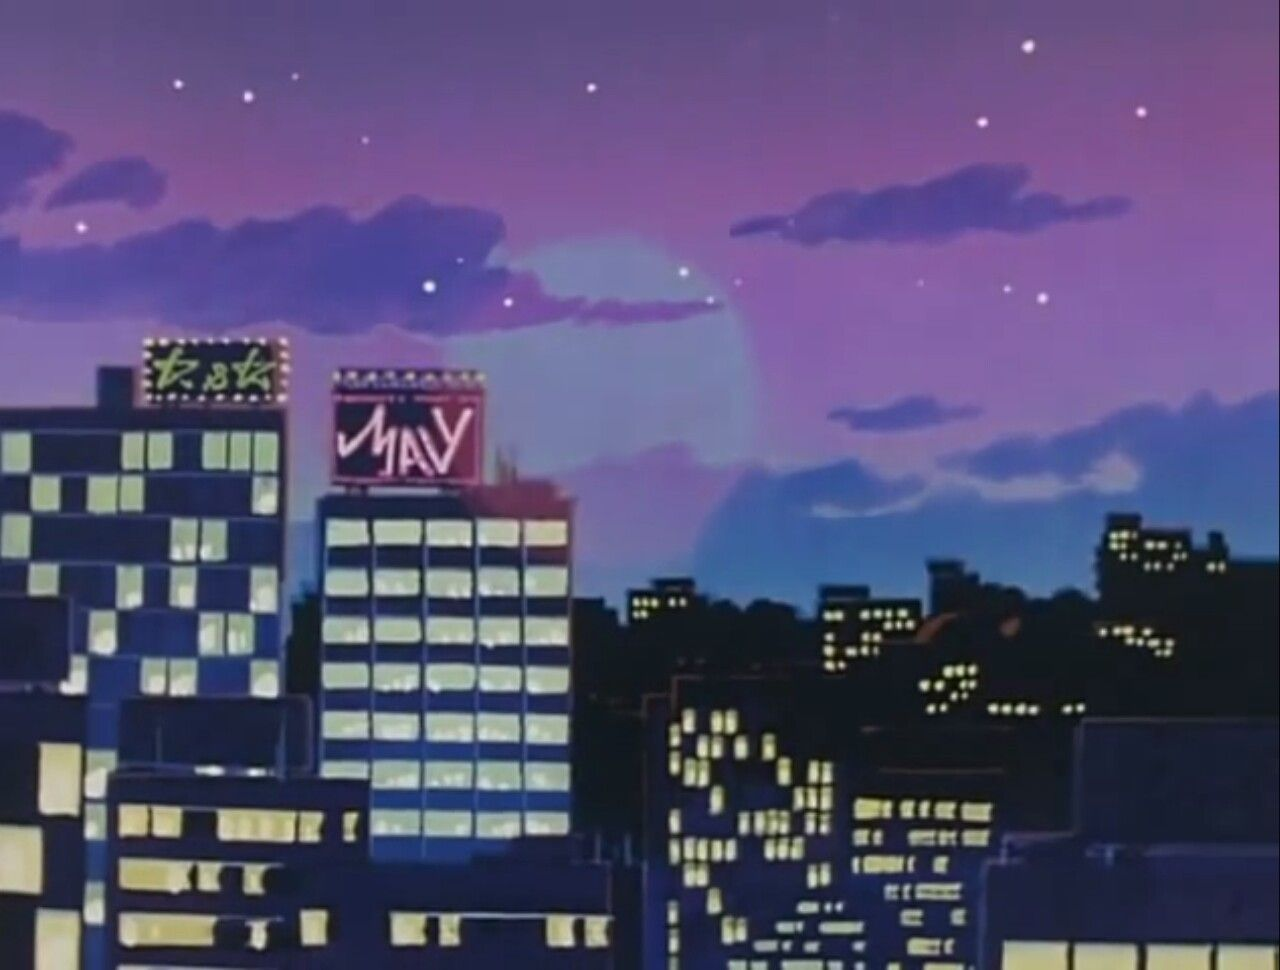 Moved To Dezaki Anime Scenery Aesthetic Anime Anime City